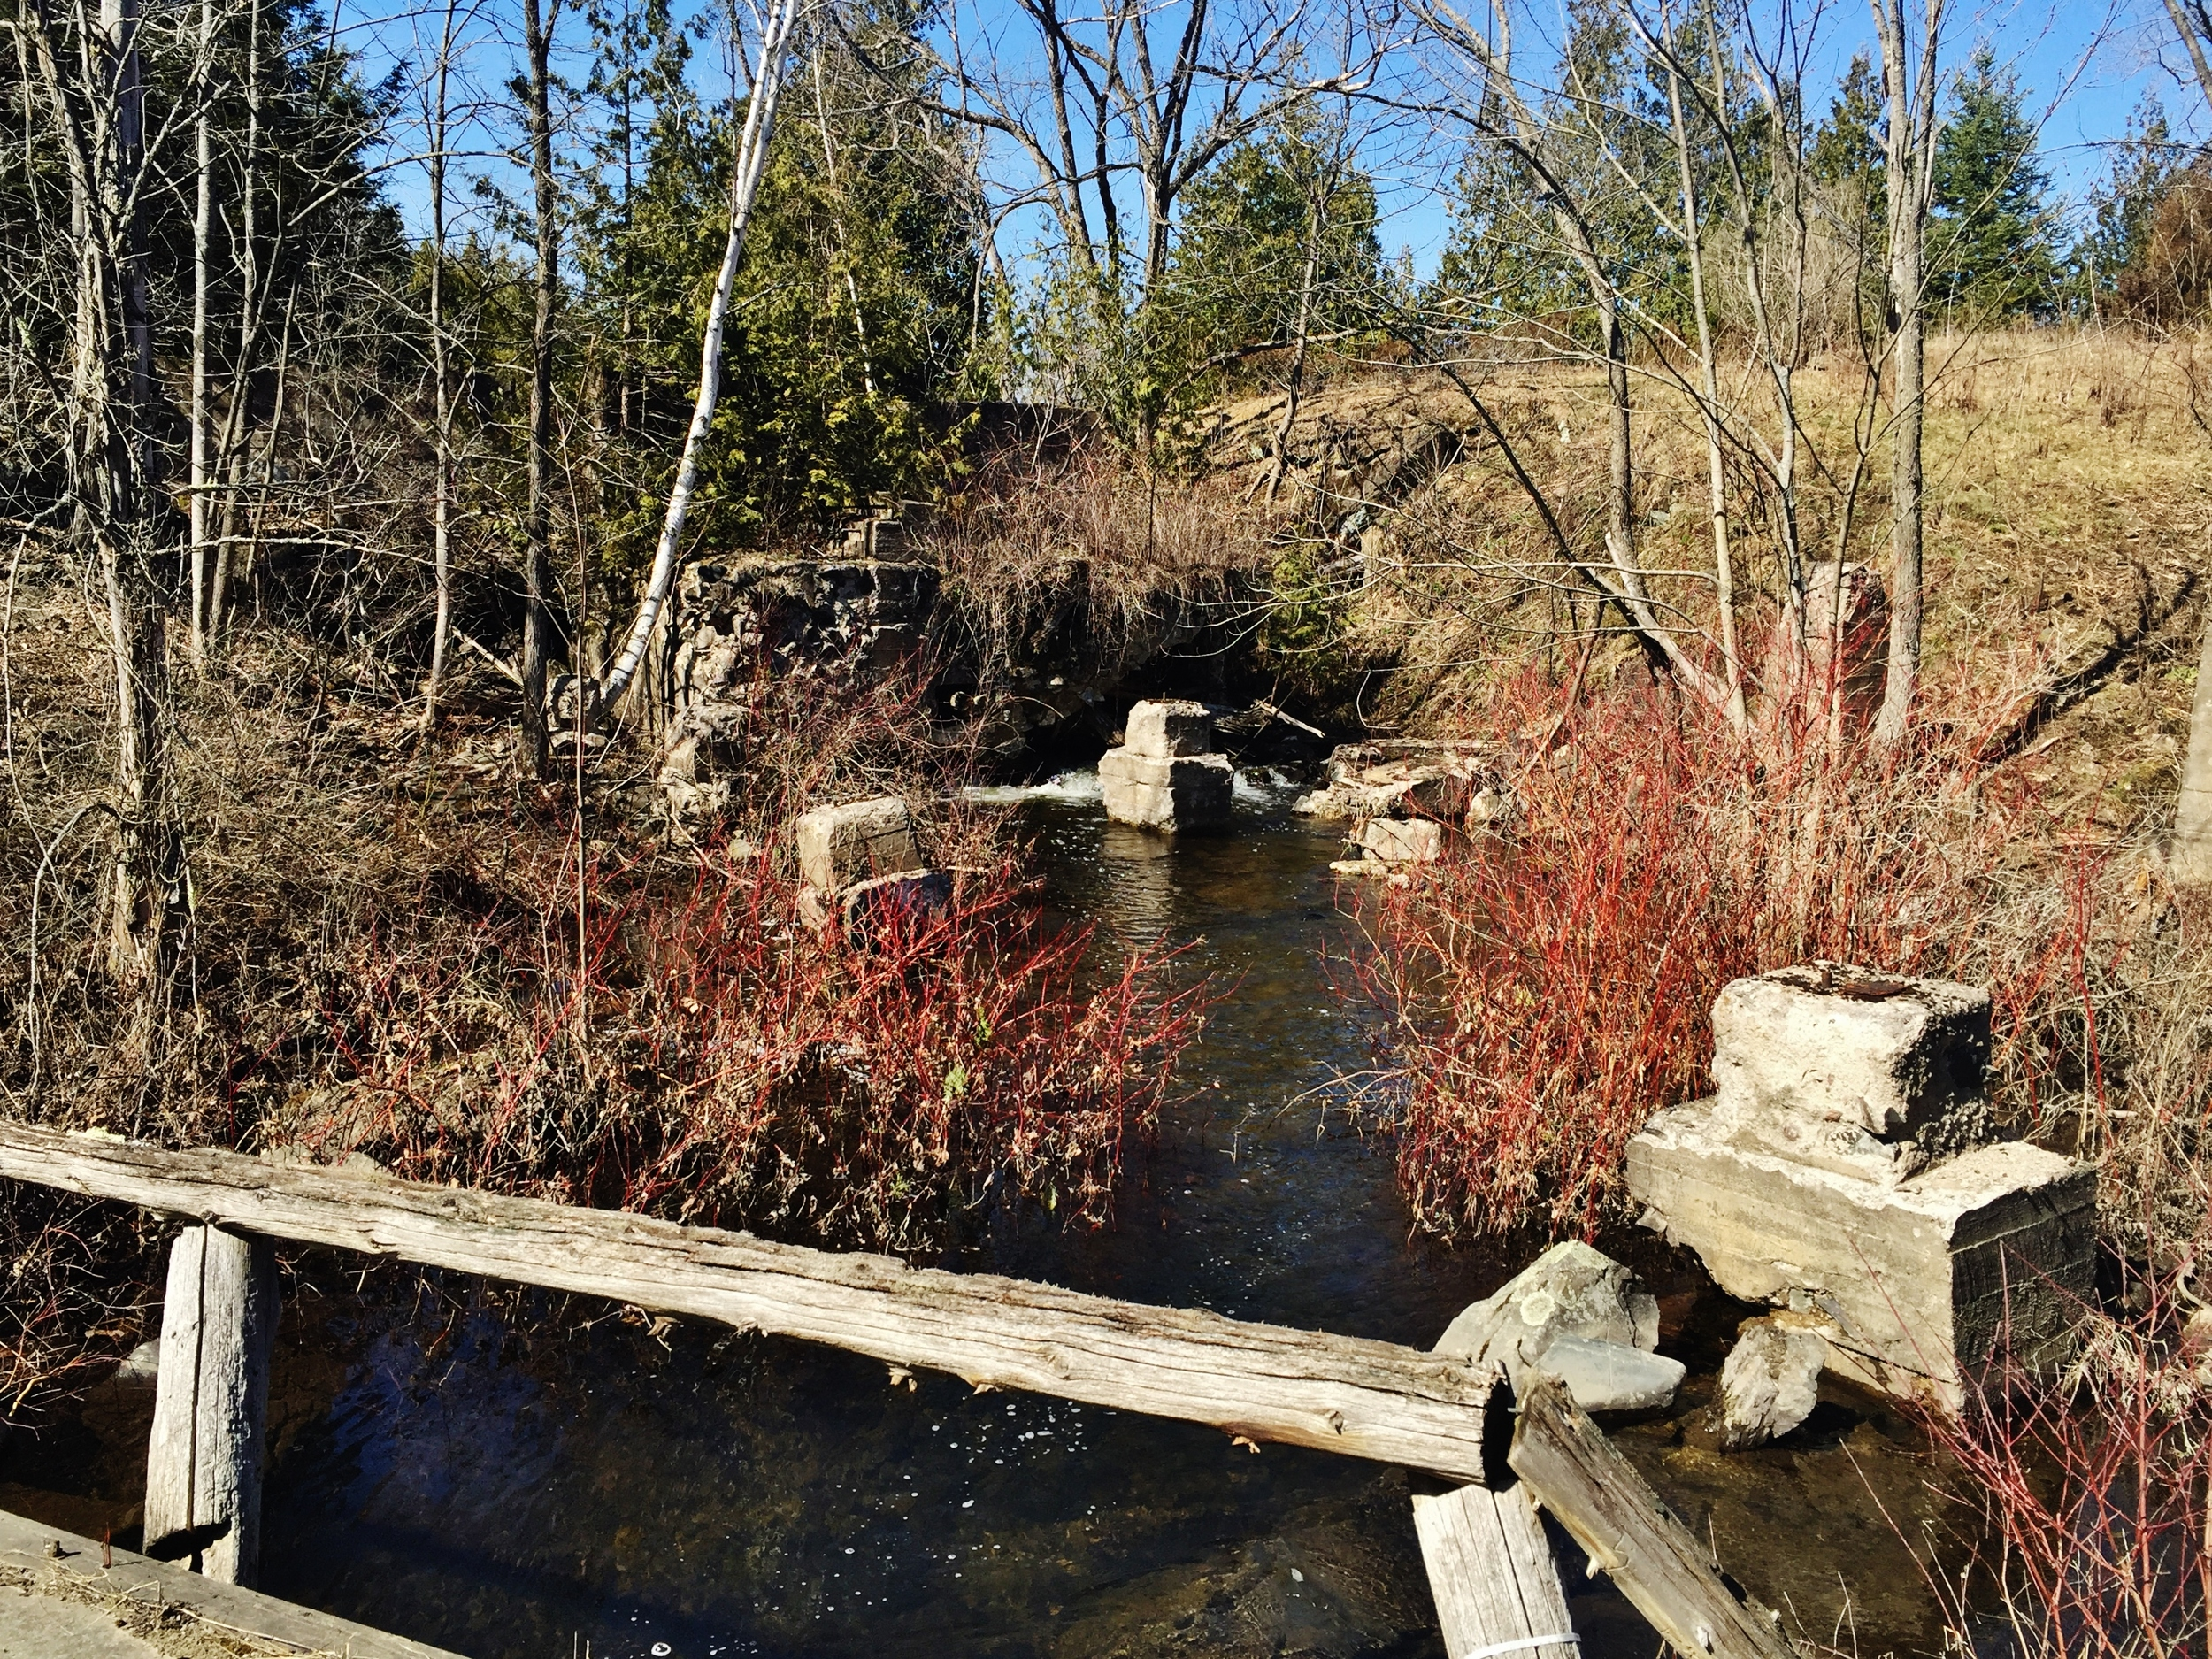 THE REMAINS OF THE briggs- BONTER SAW MILL - lOT 19 cONCESSION 5, mARMORA tOWNSHIP